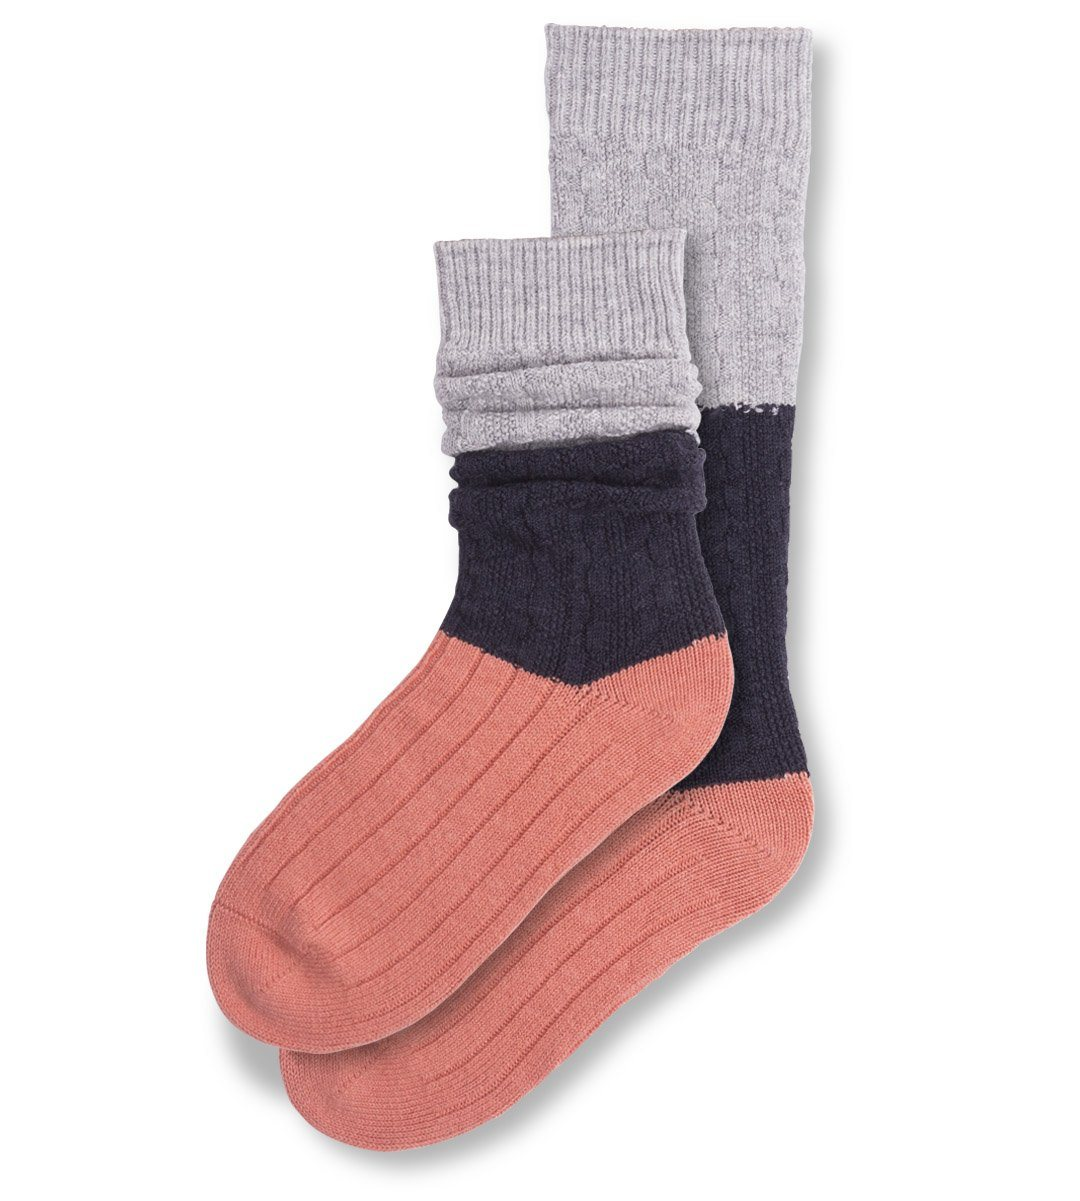 Cozy Af Boot Women's Merino Boot Socks